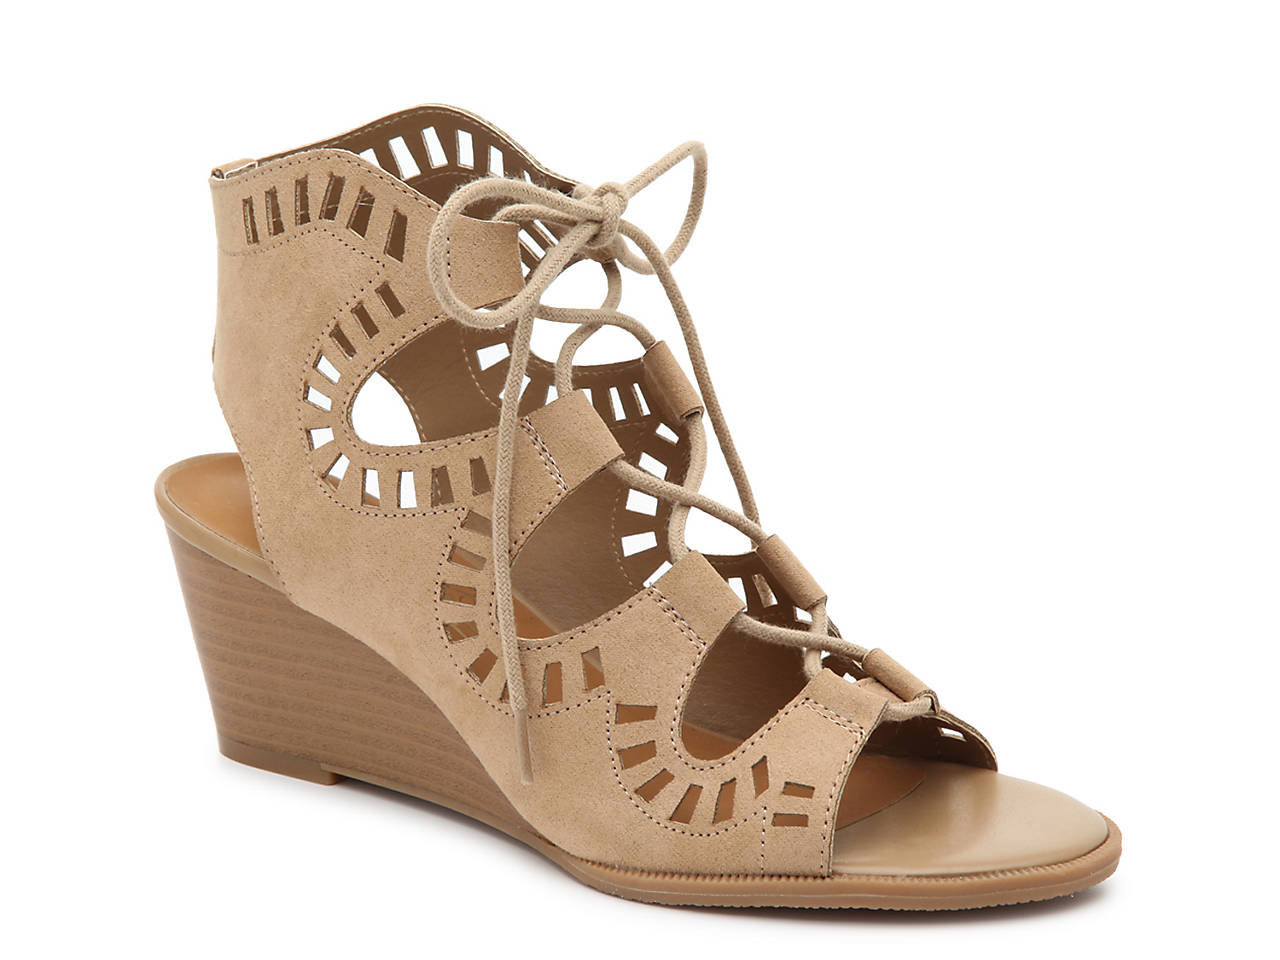 95105feaa2ca Madeline Morning Glory Wedge Sandal Women s Shoes